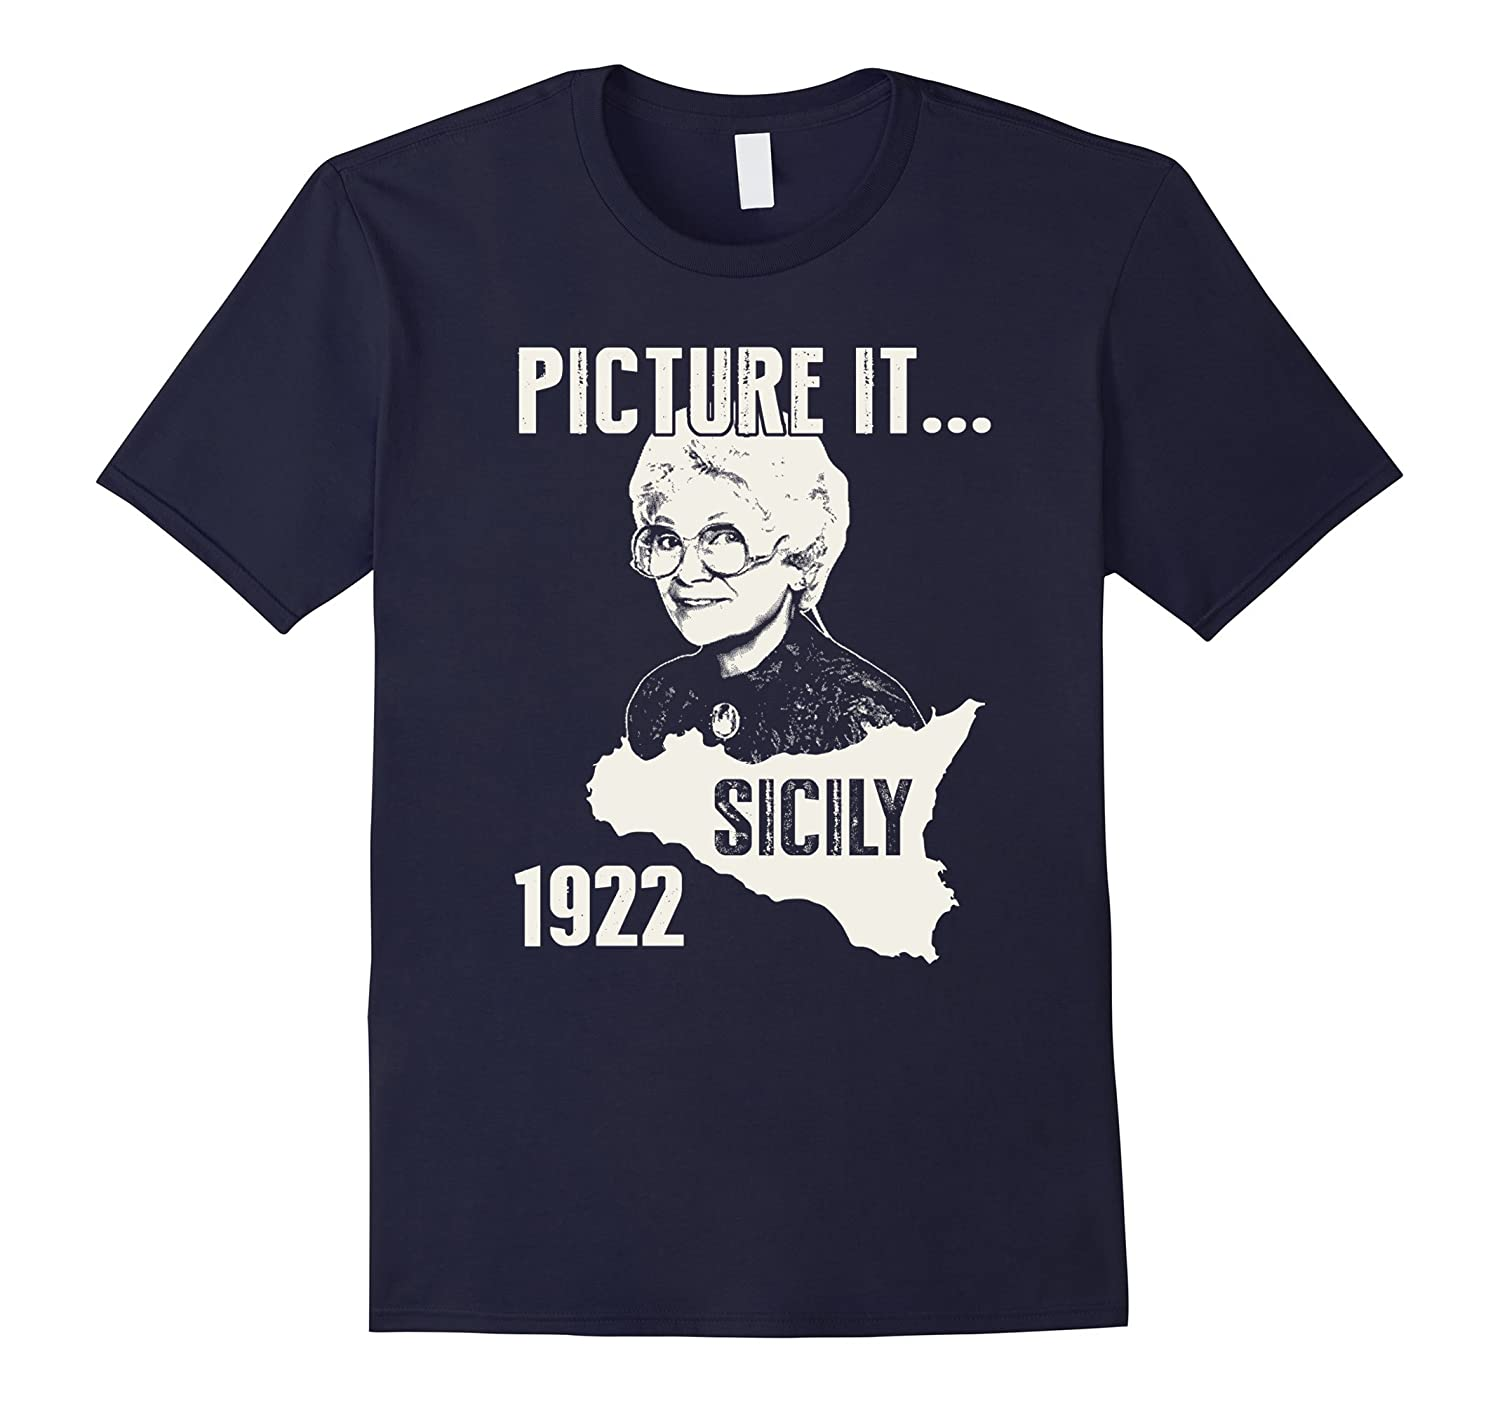 Picture It... Sicily 1922 Graphic T-Shirt-TH